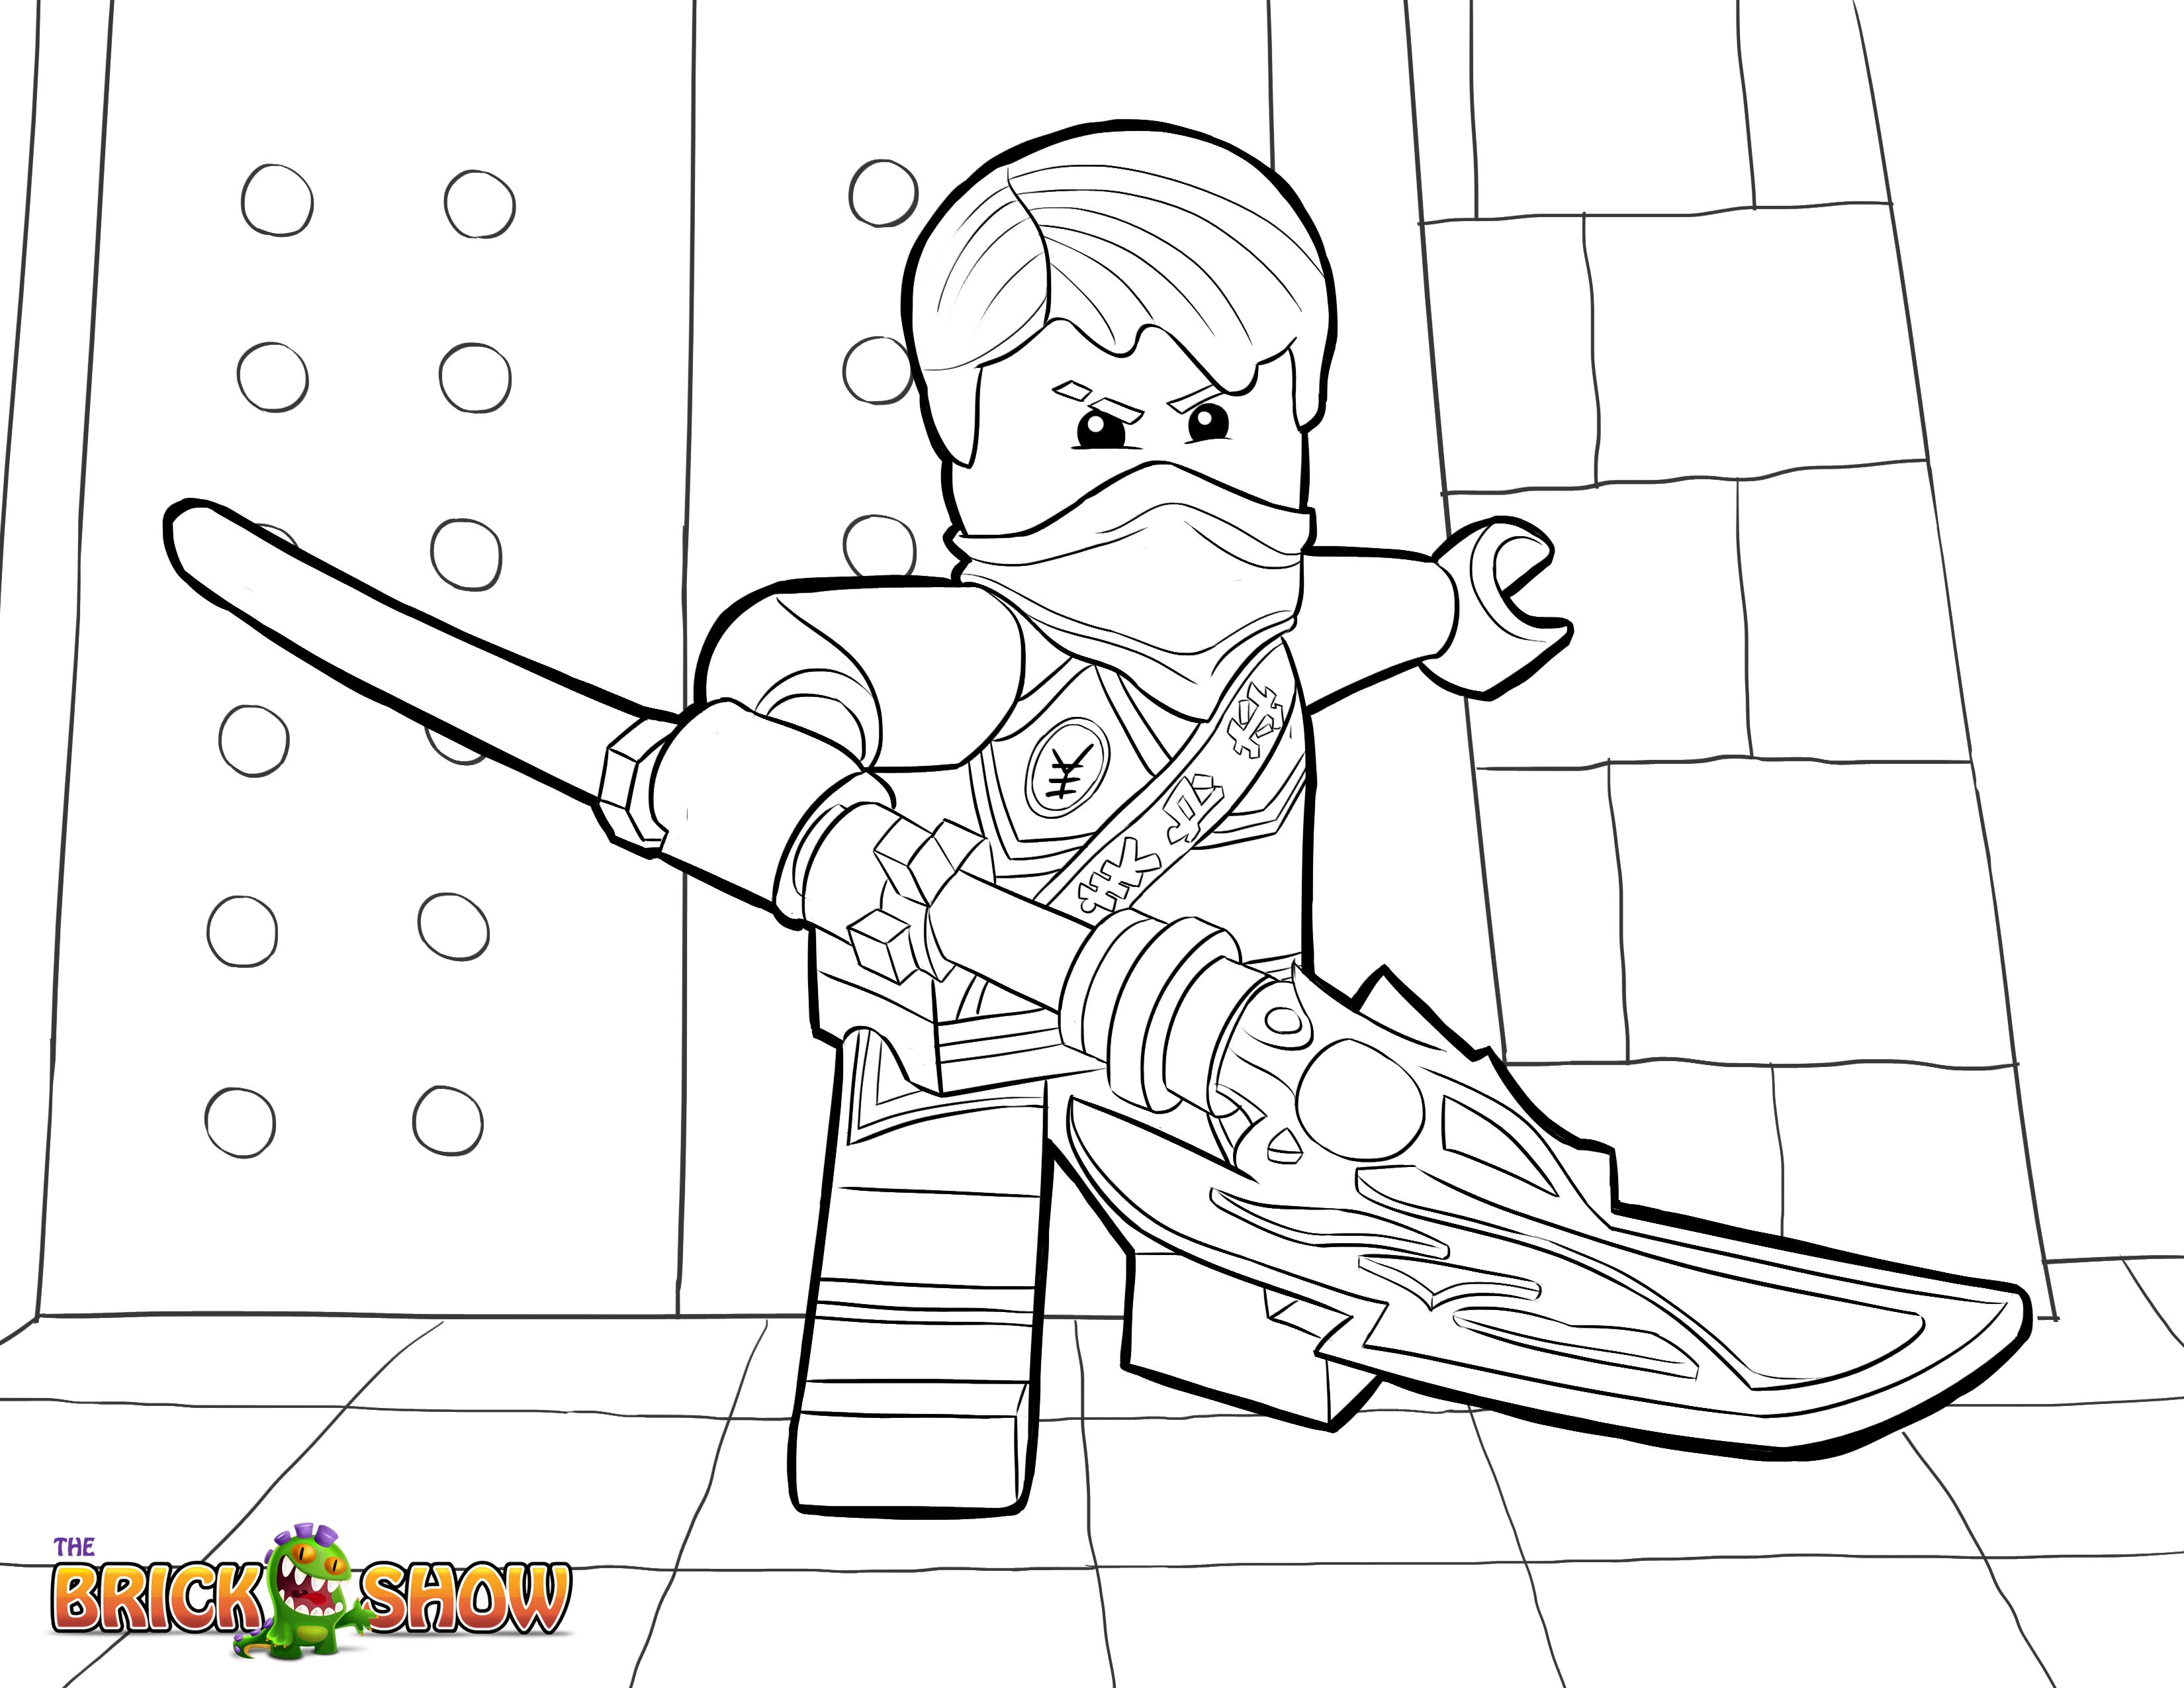 Coloring pages ninjago - Lego Ninjago Coloring Page Lego Lego Ninjago Jay Tournament Of Elements Printable Color Sheet